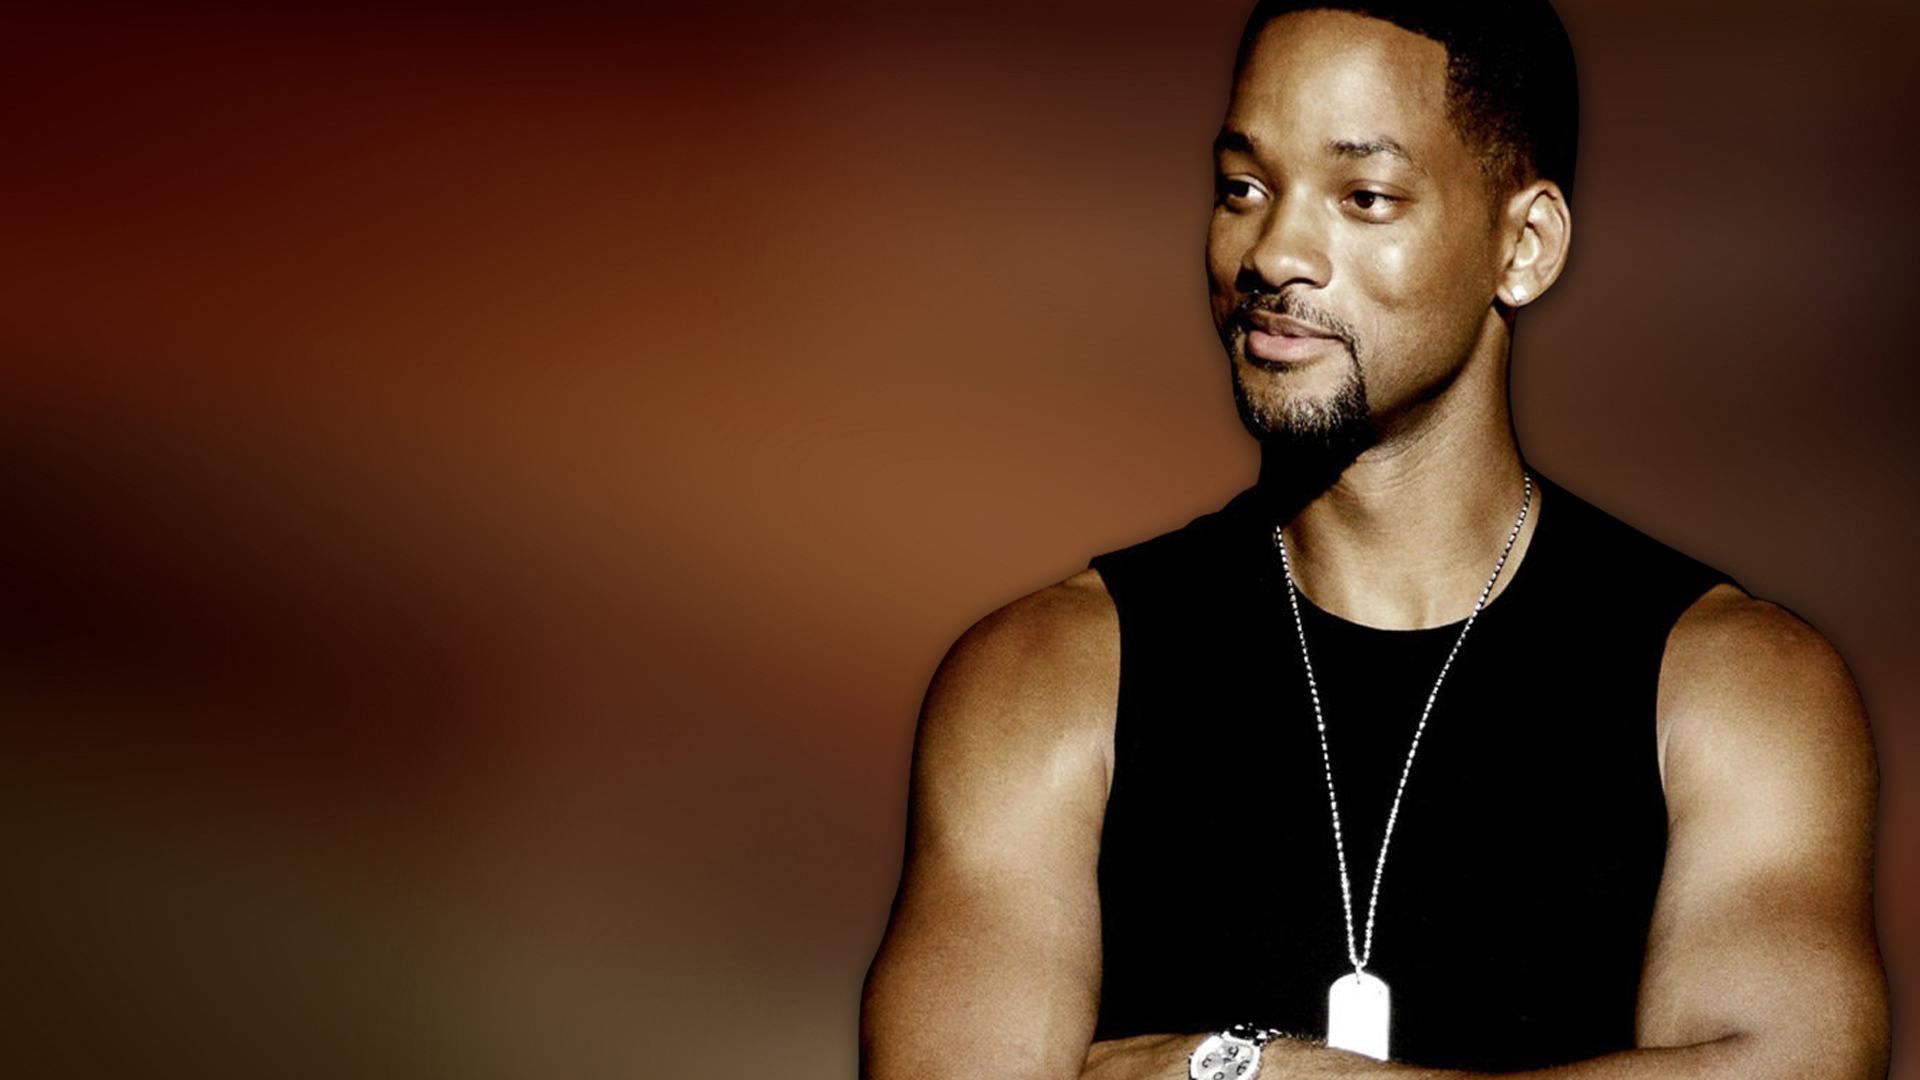 1920x1080 - Will Smith Wallpapers 9